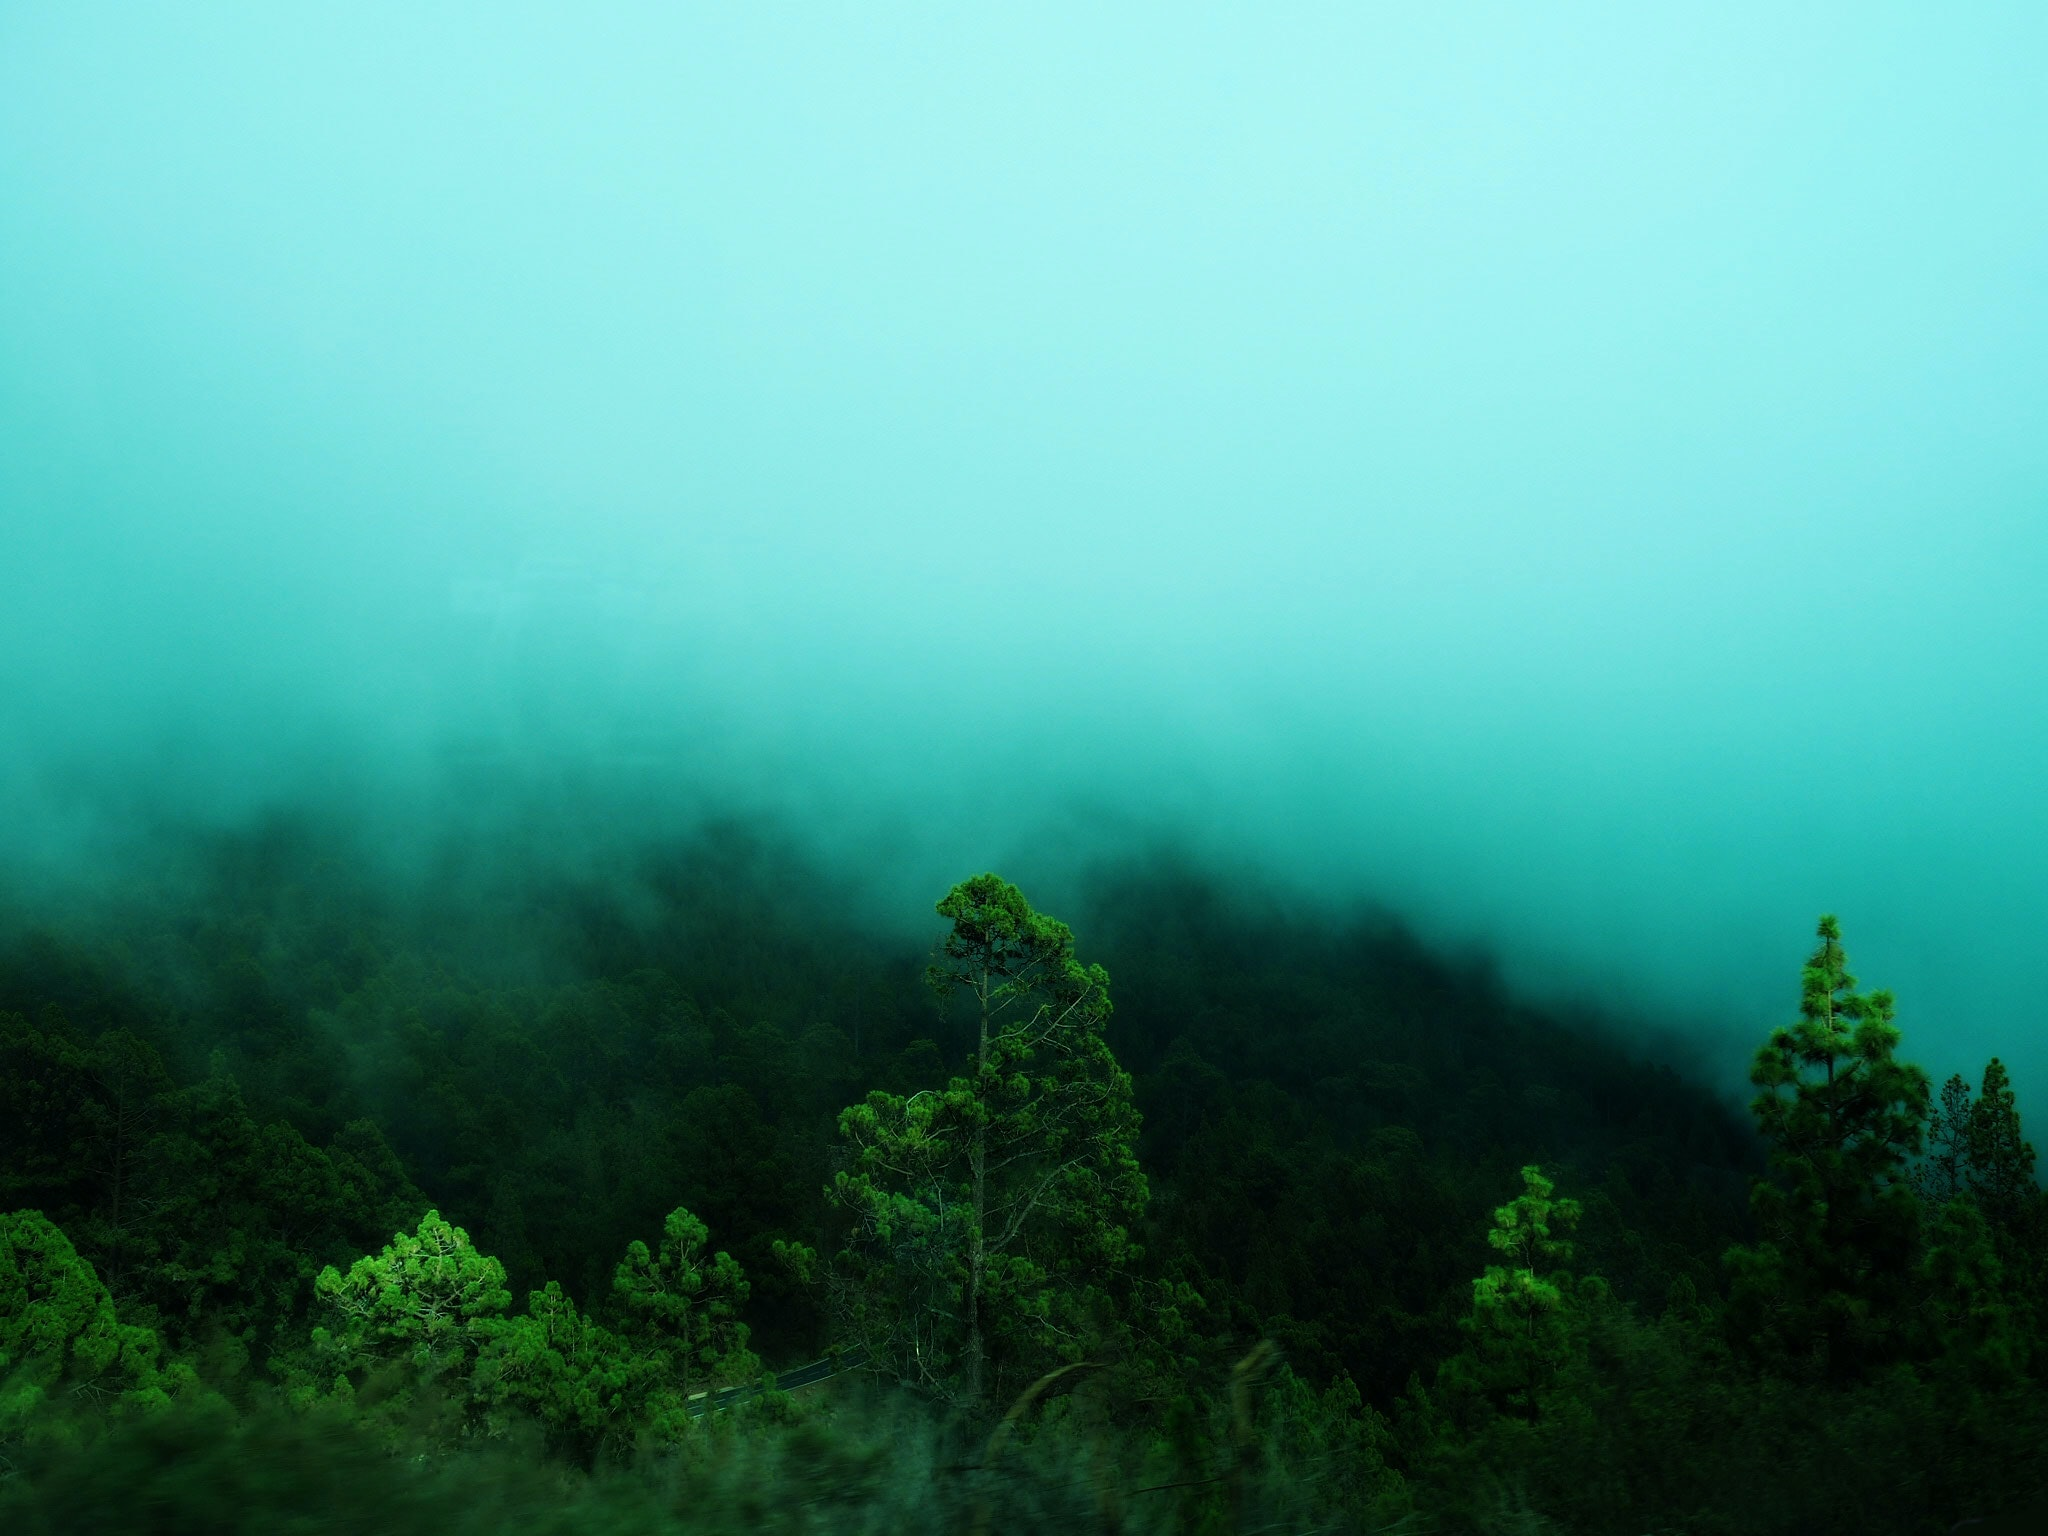 green leafed trees surrounded by fog